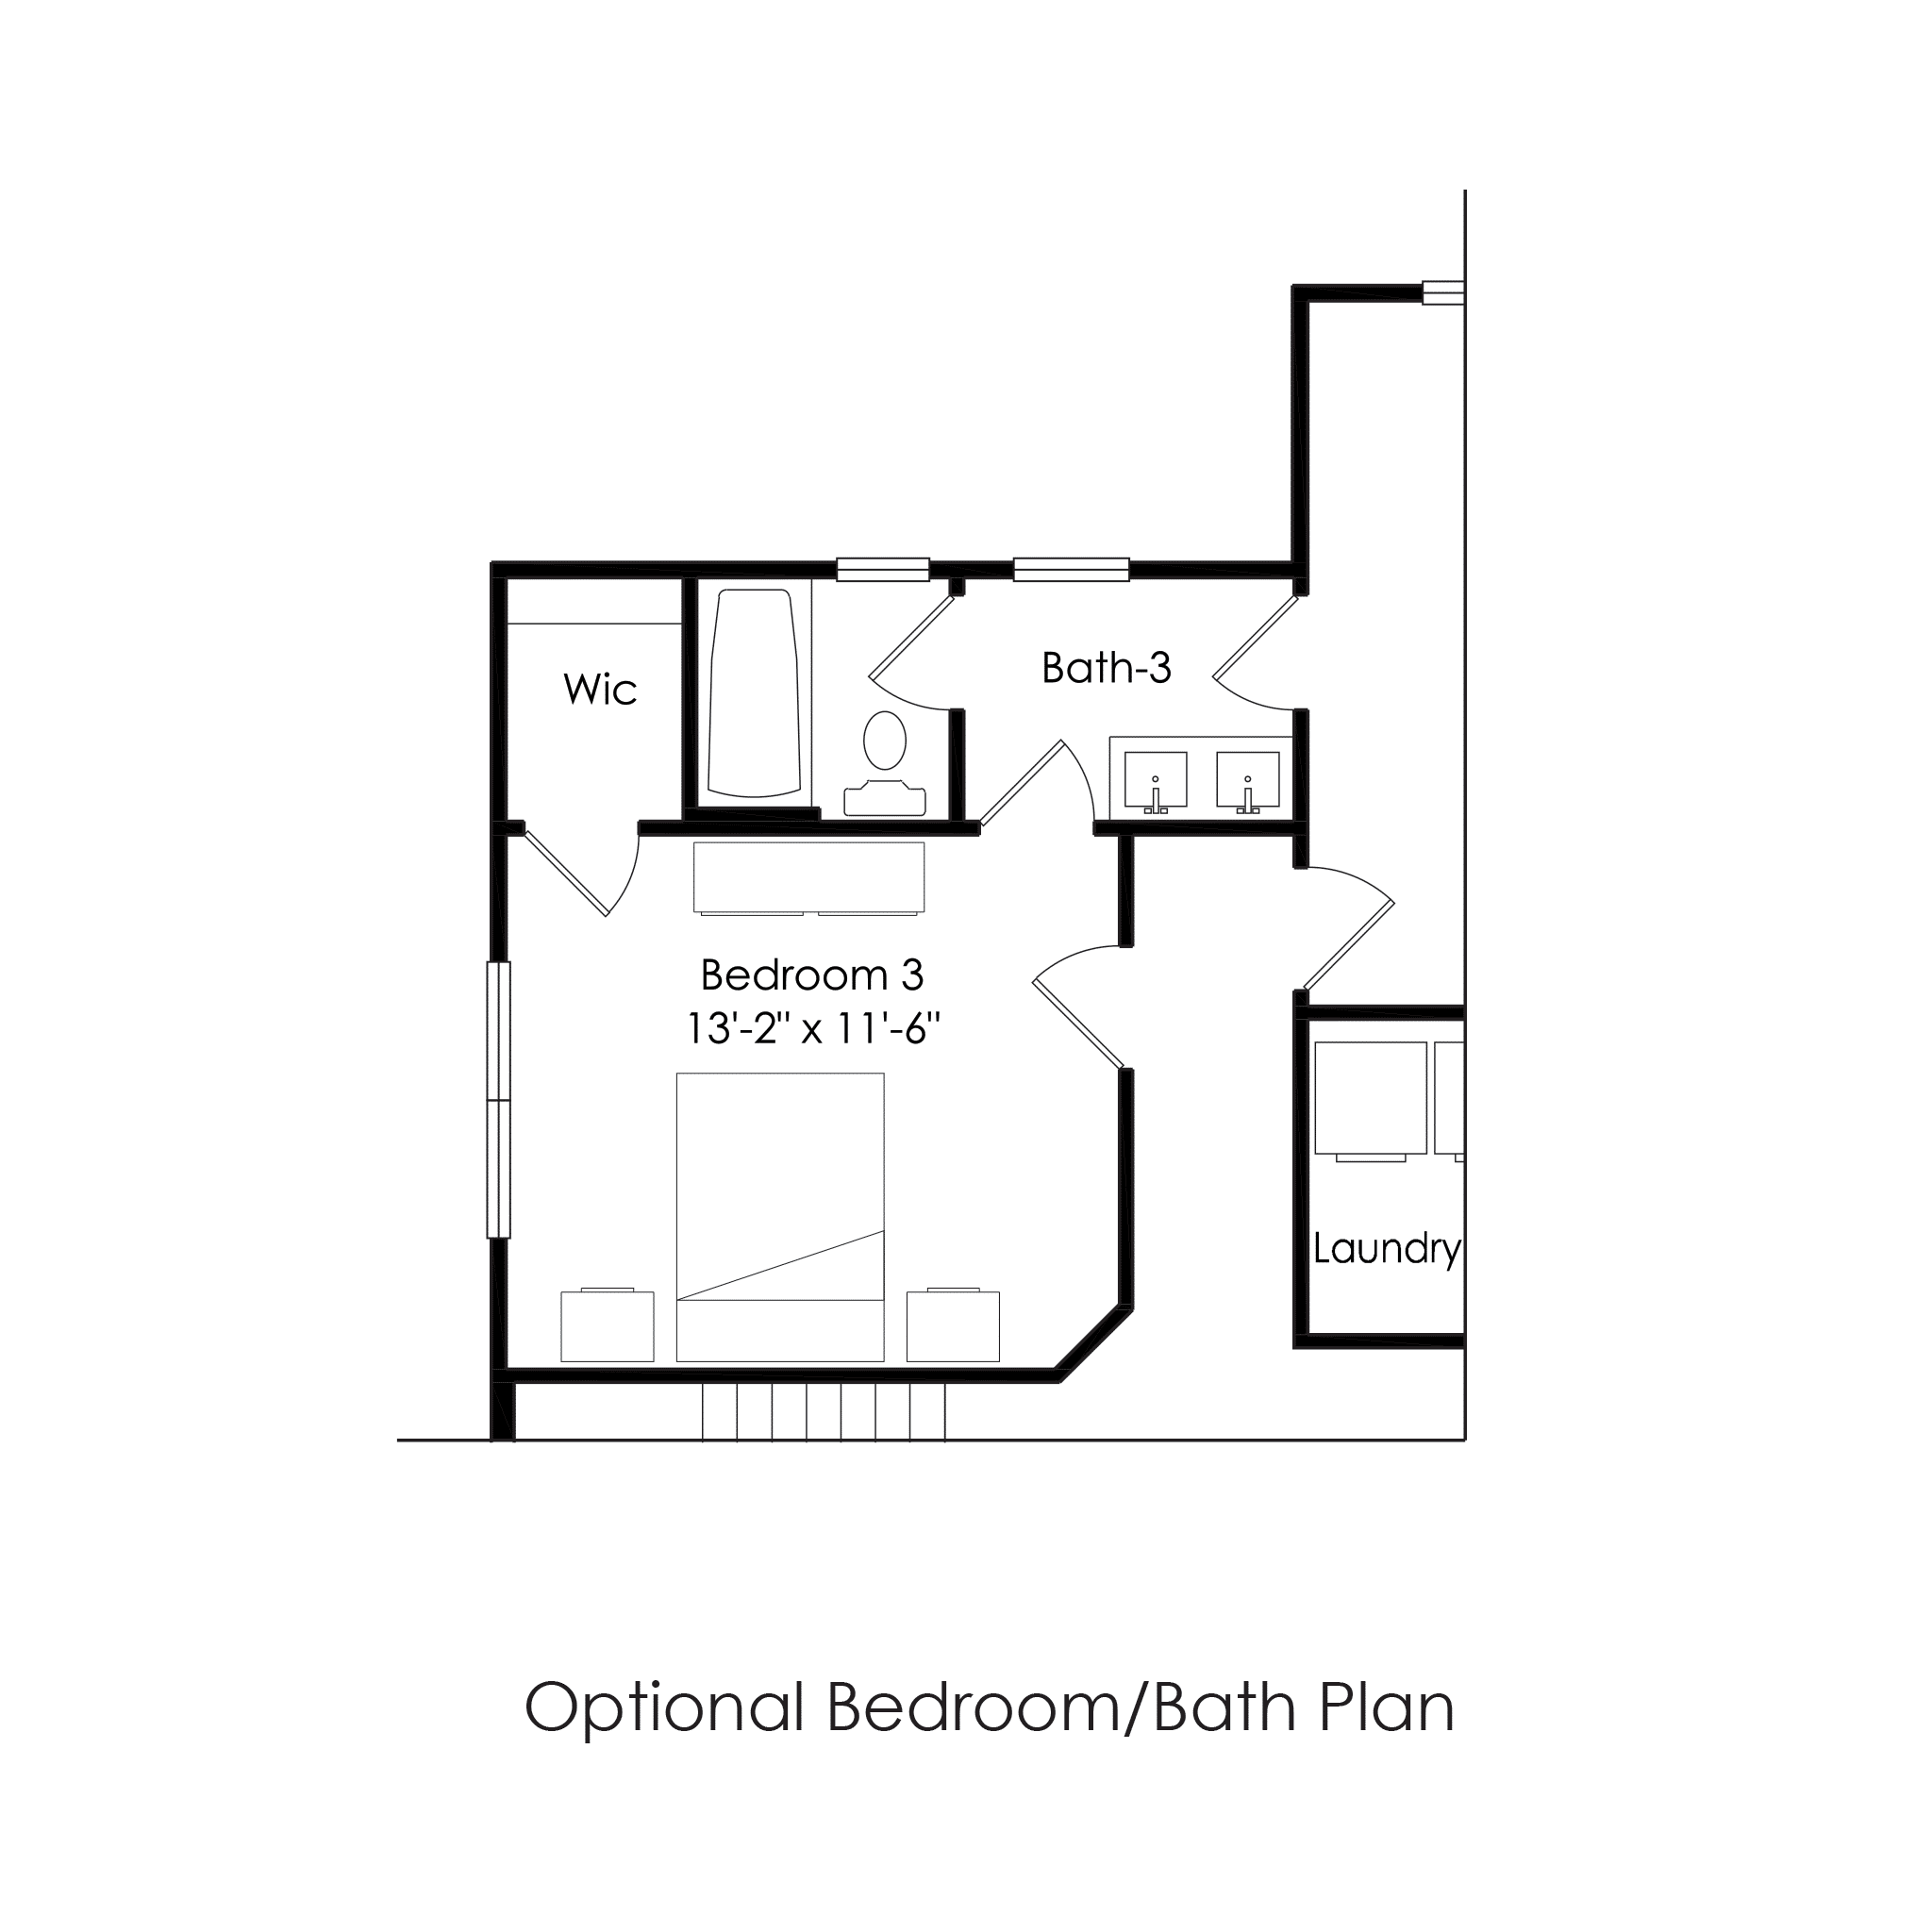 Second Floor – Optional Bedroom Bath Plan